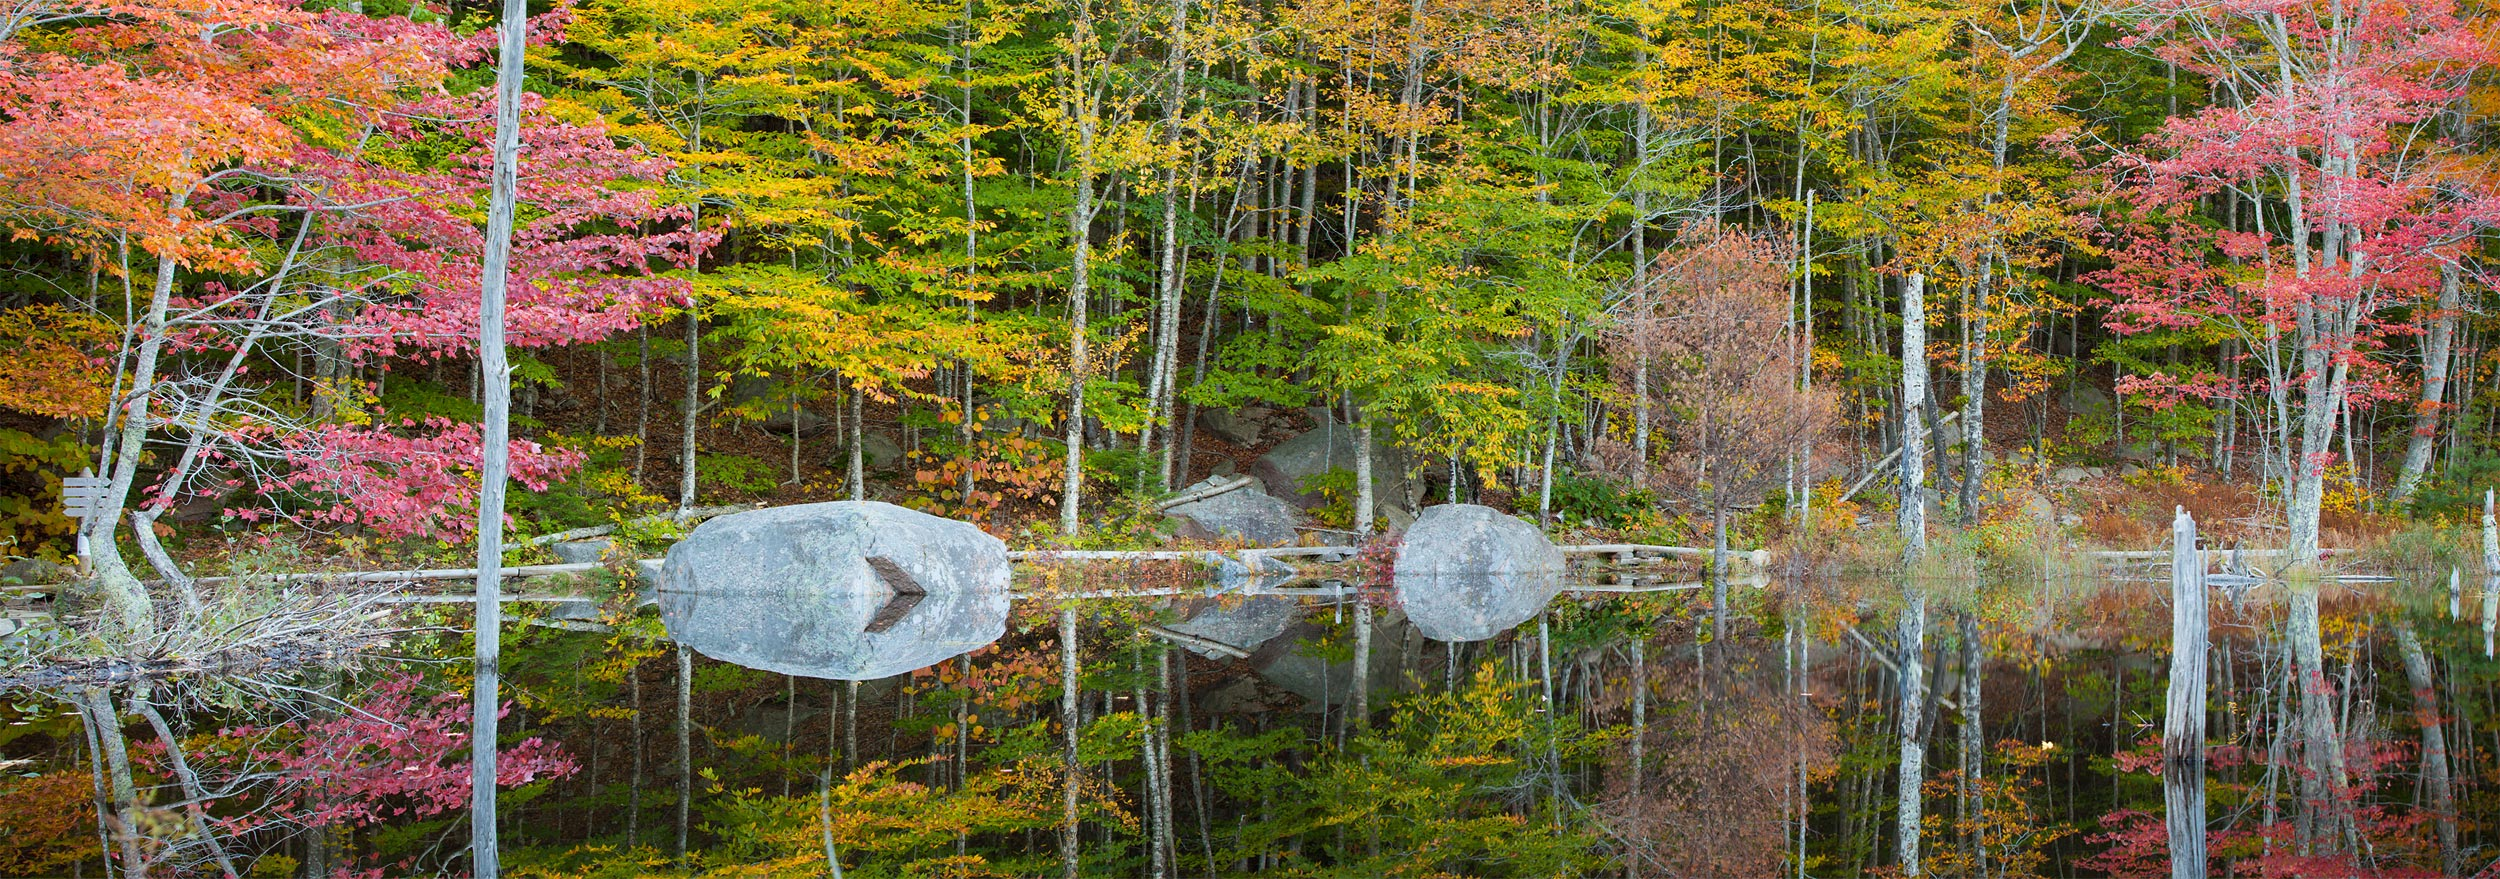 Small Pond on the Canon Brook Trail, Acadia National Park, Maine